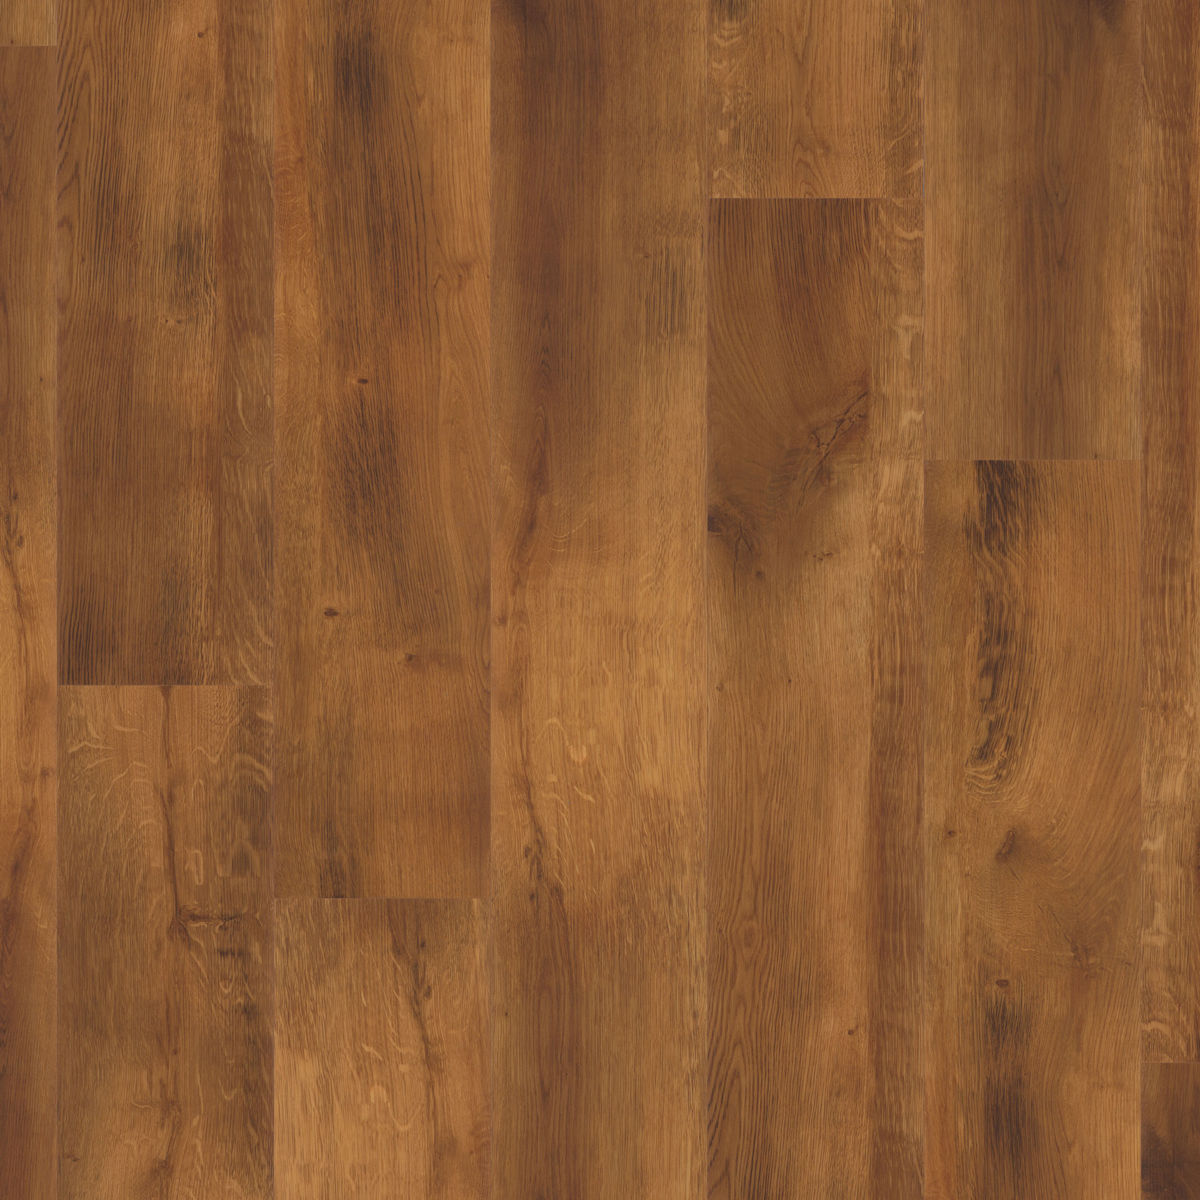 Types of flooring and their advantages 41